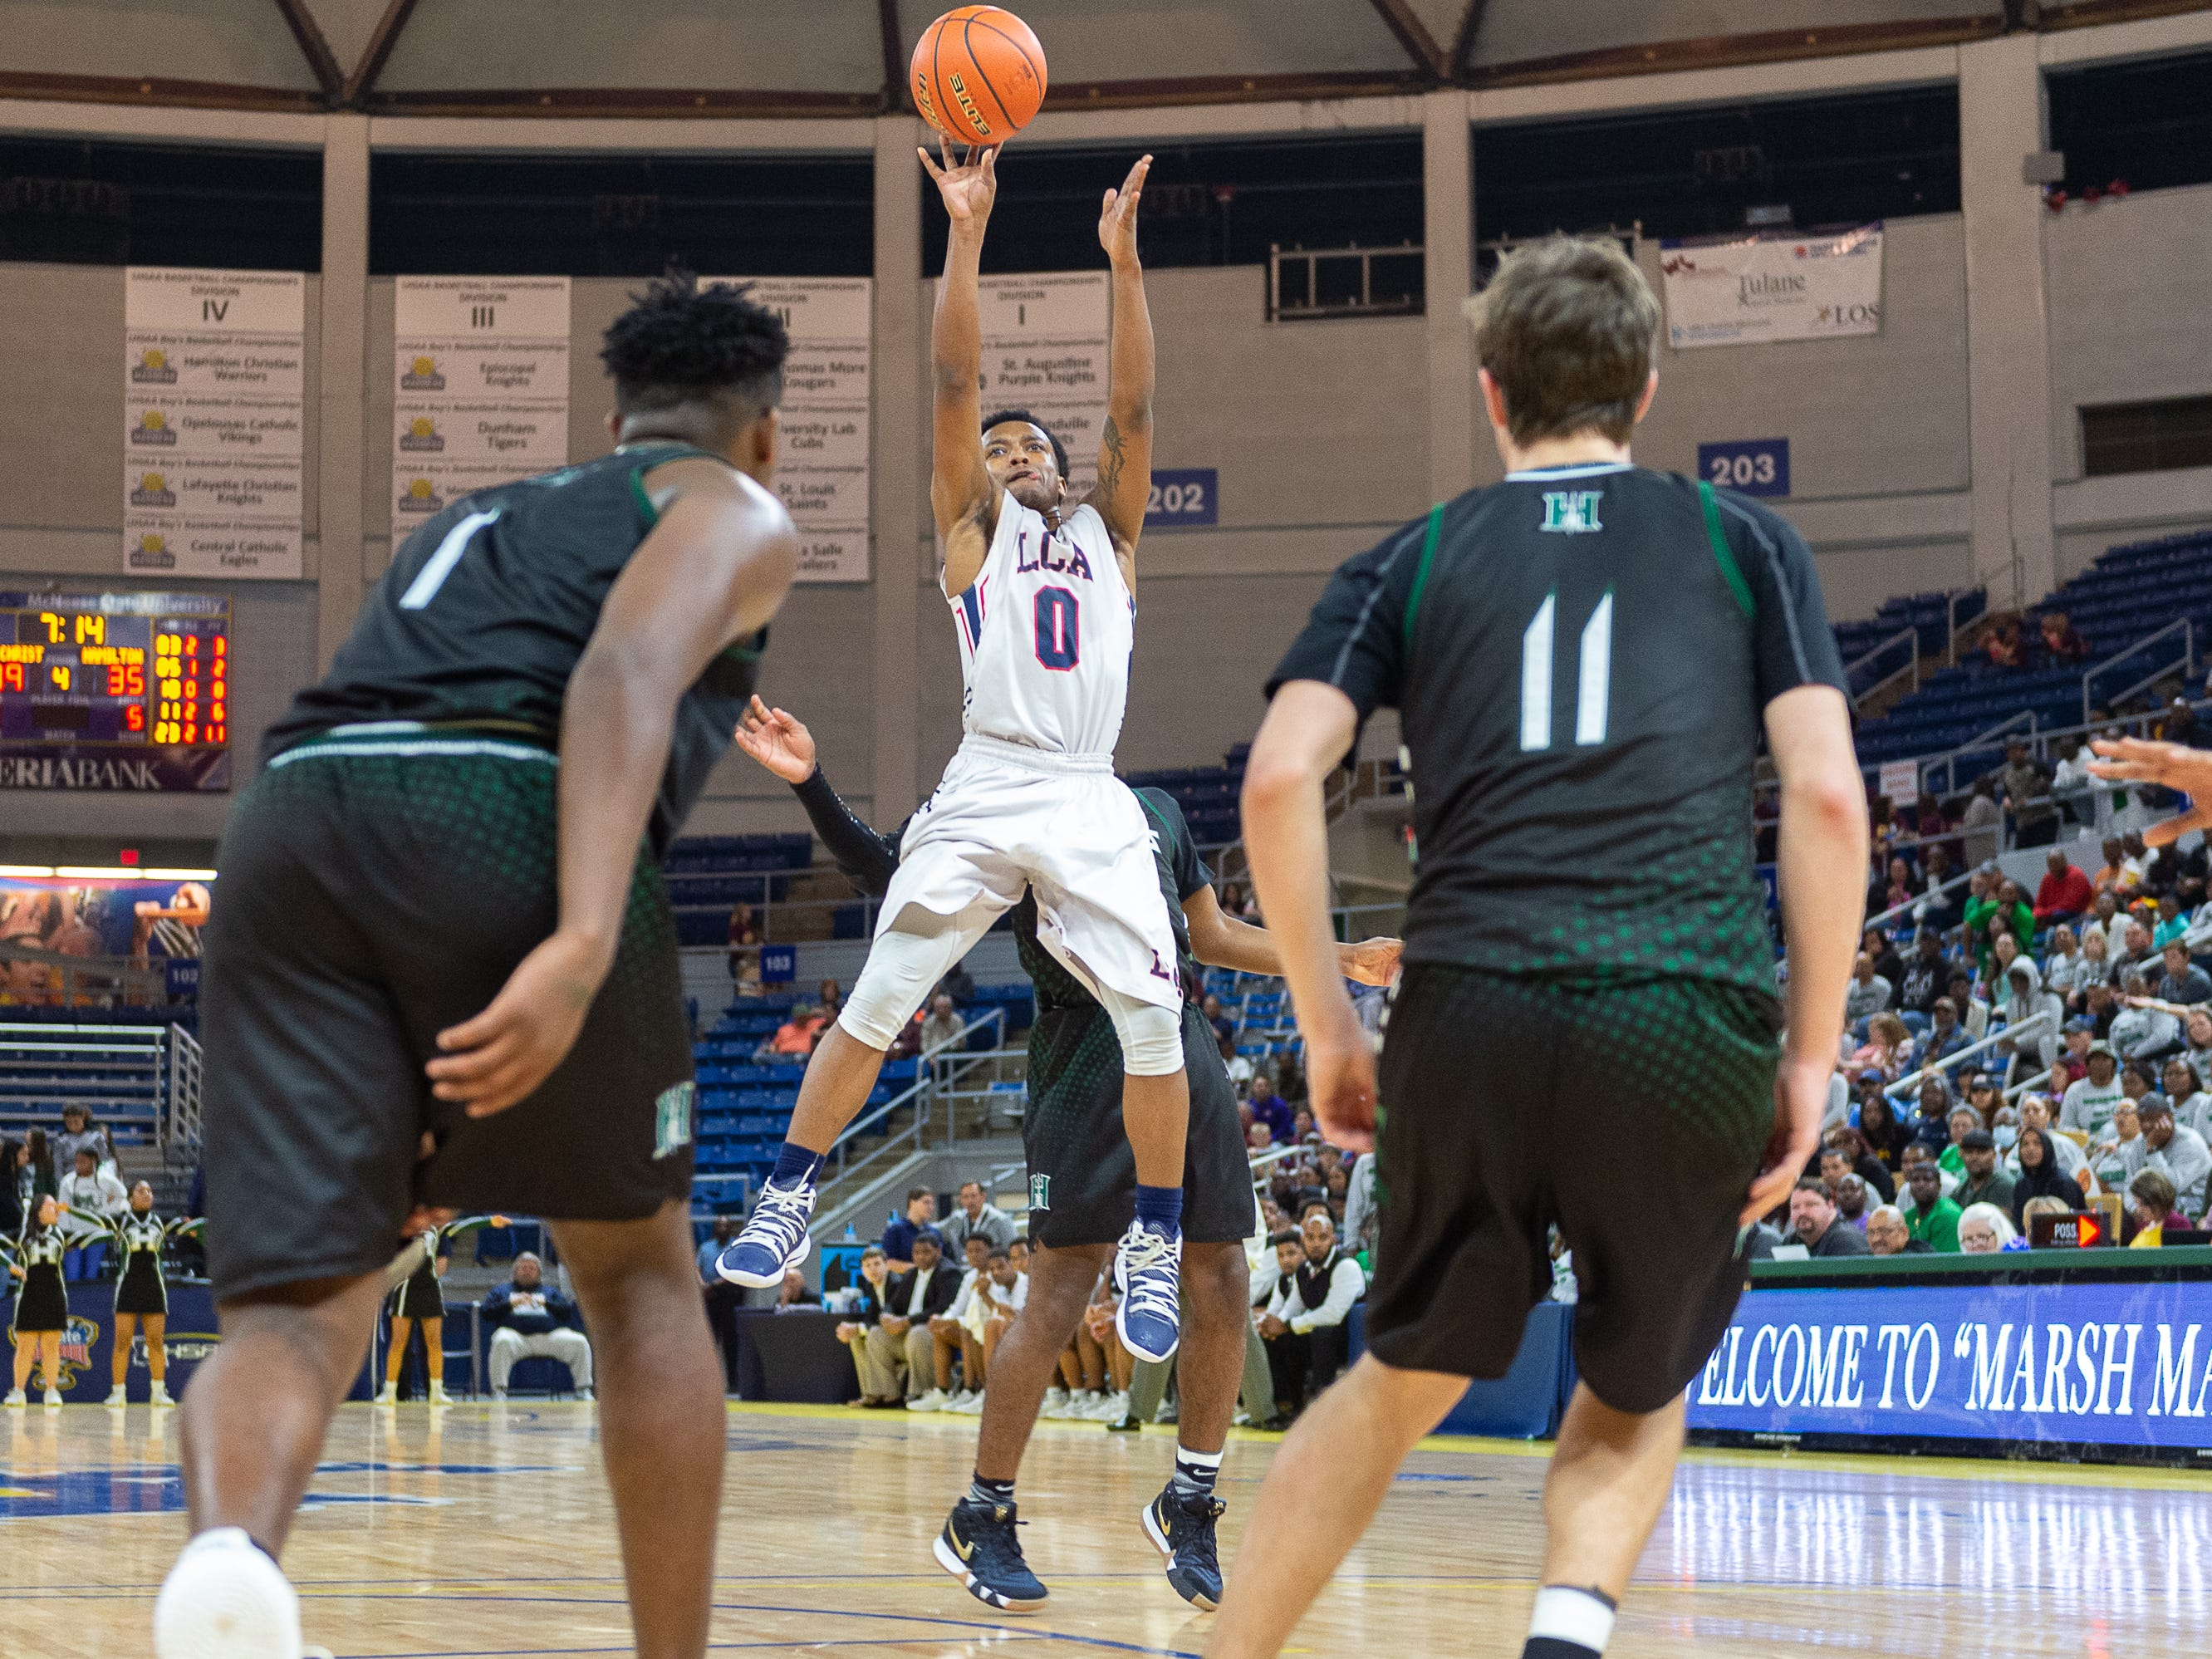 Terrence Jones Jr. takes a shot as Lafayette Christian takes down Hamilton Christian to win the Allstate Sugar Bowl/LHSAA Boys' Marsh Madness State Championship. Friday, March 8, 2019.